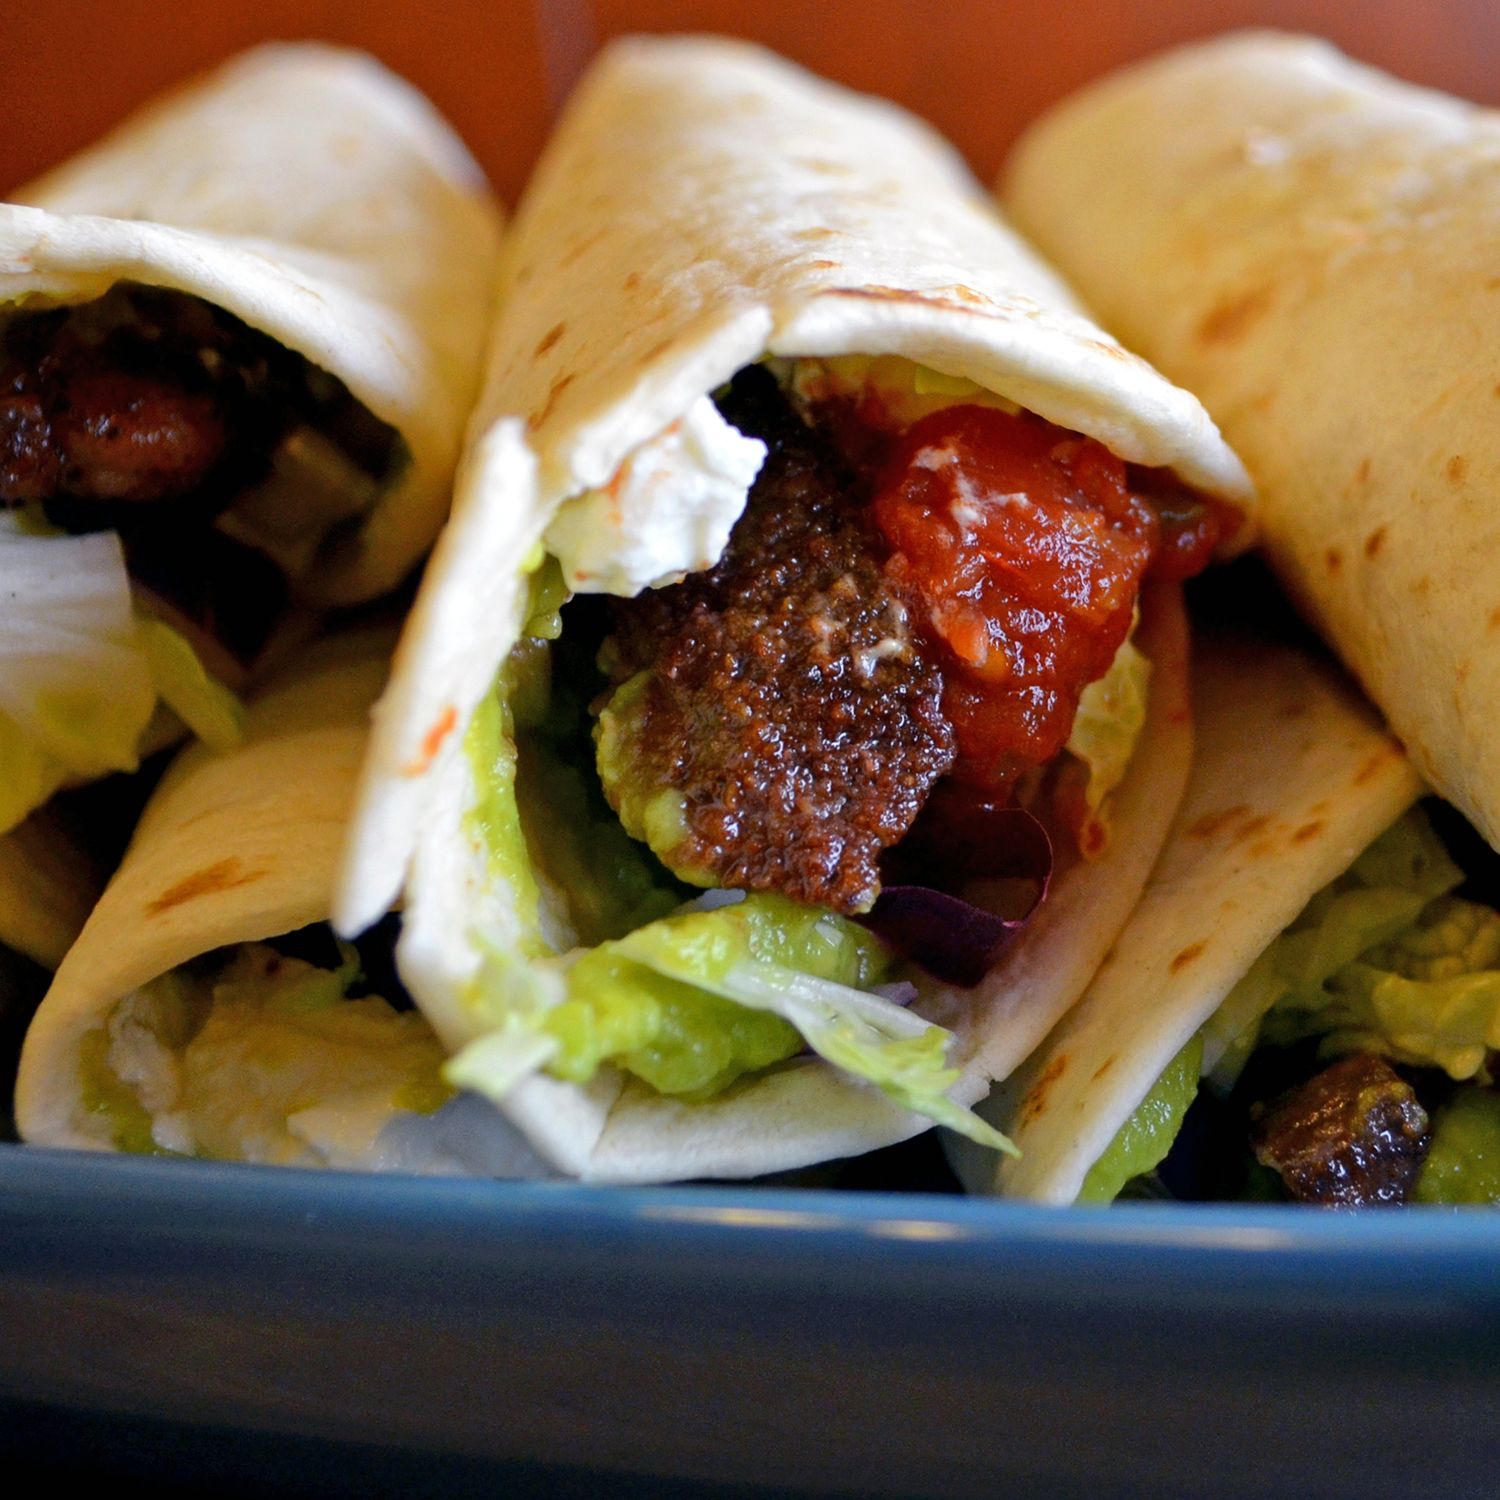 Steak Tacos with Guacamole, Salsa, and Lima Crema - Vegan w/ seitan or beefless strips, and non-dairy sour cream.